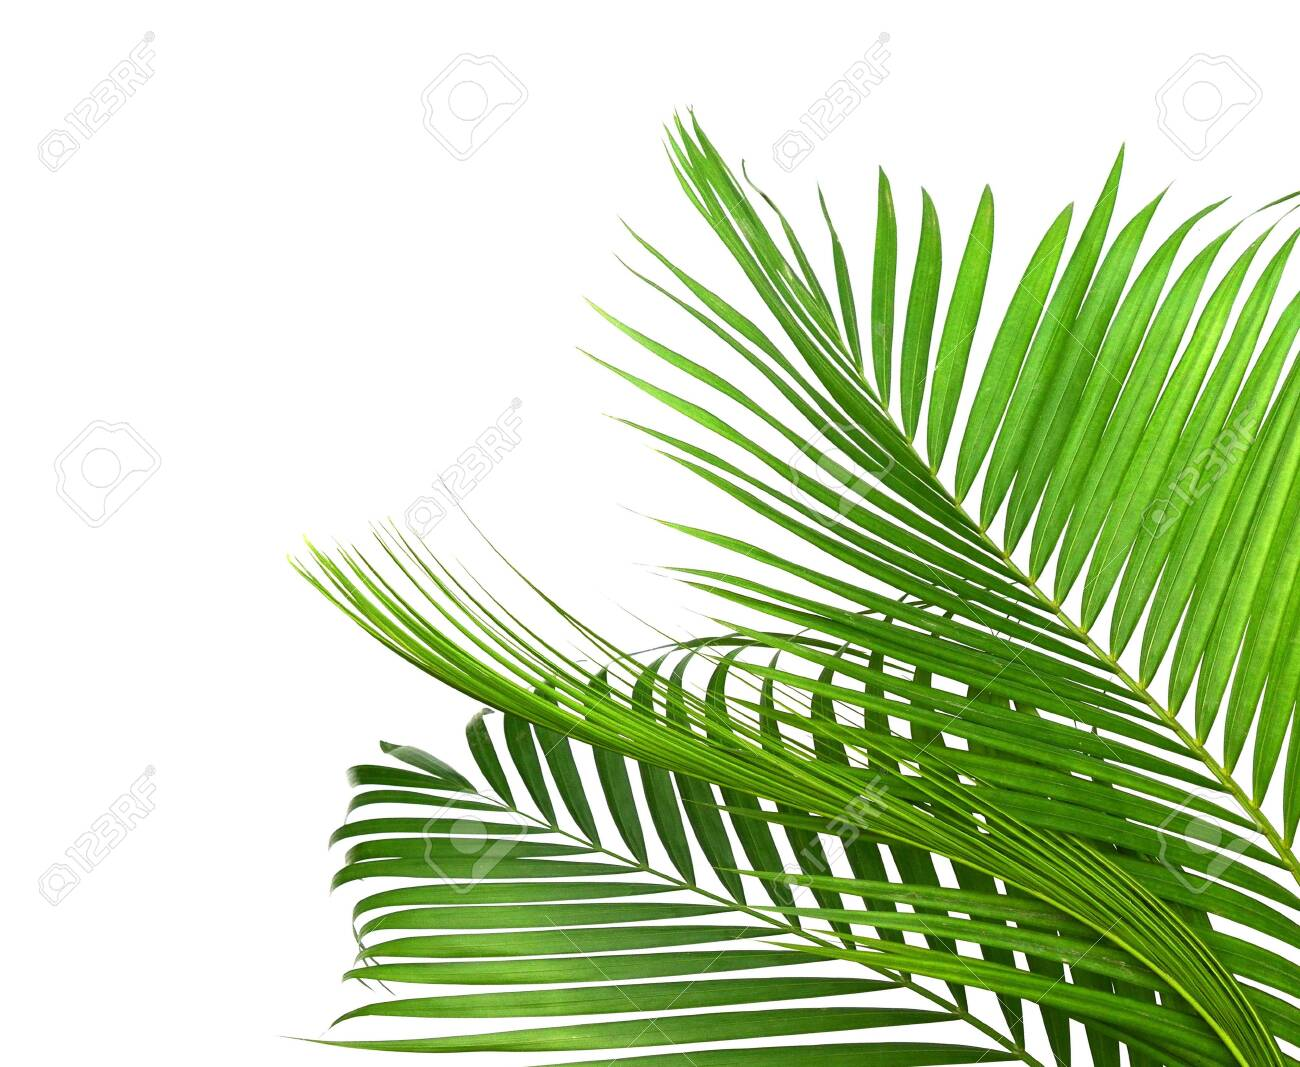 Yellow Palm Leaves Dypsis Lutescens Or Golden Cane Palm Areca Stock Photo Picture And Royalty Free Image Image 118986956